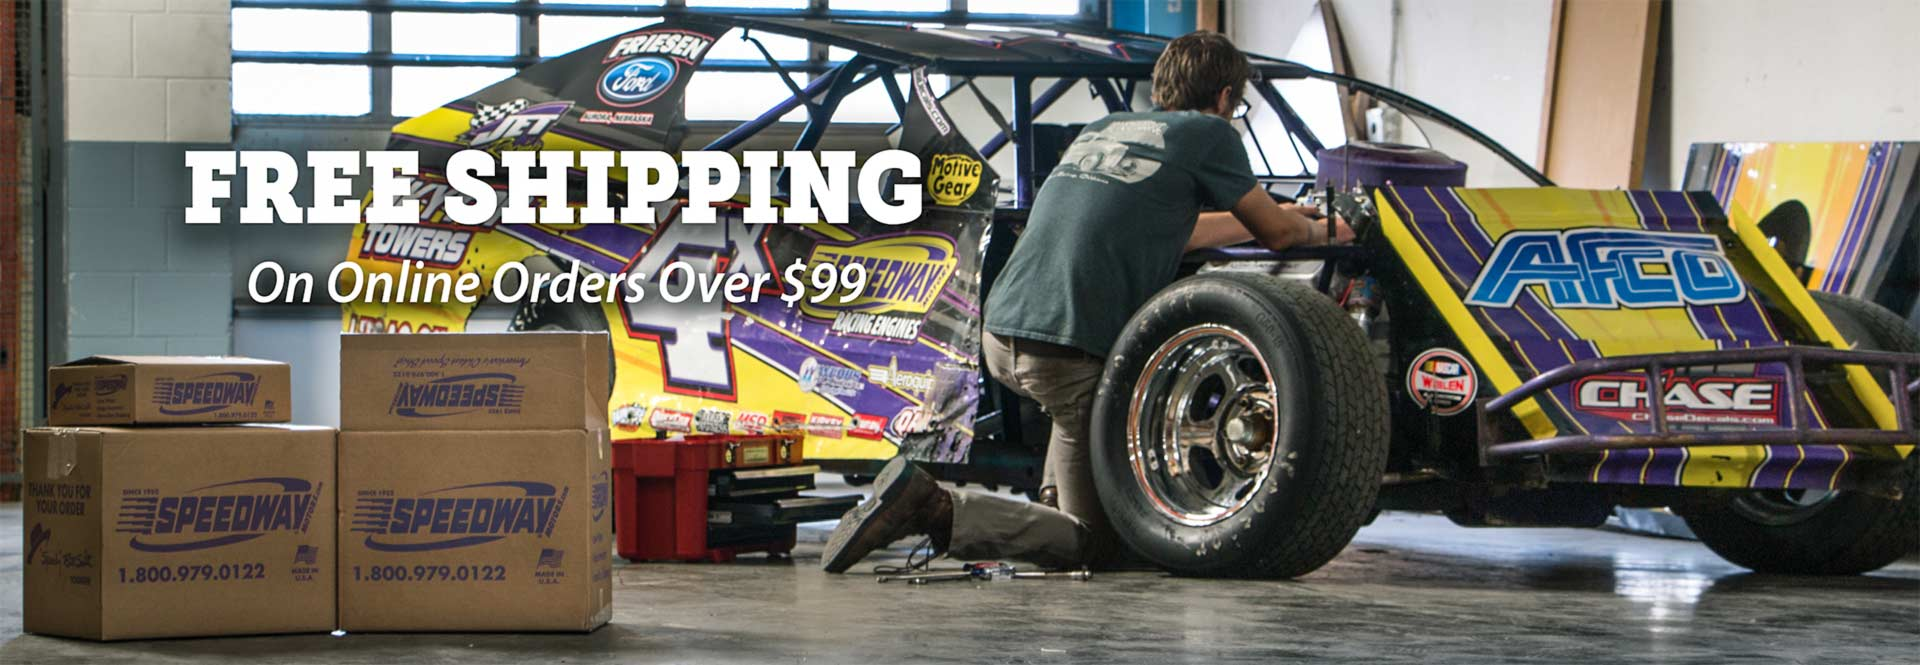 Free Shipping On Online Order Over $99